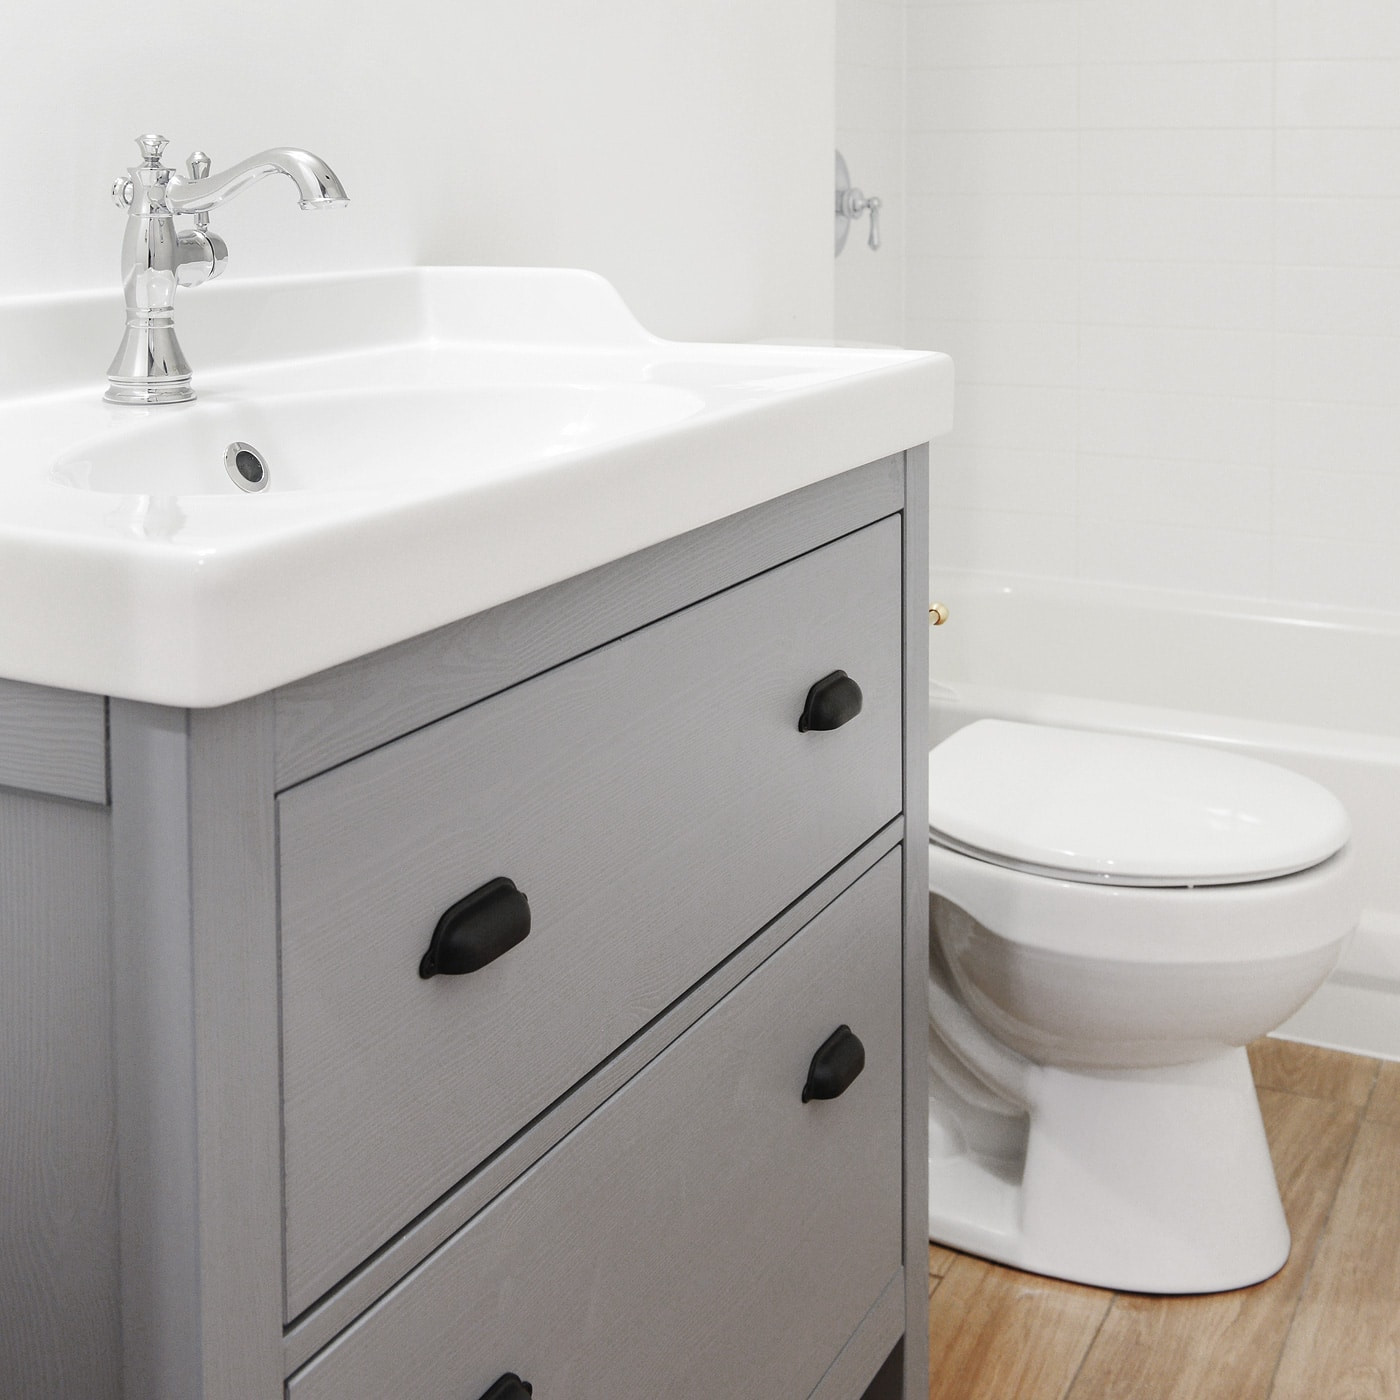 Best ideas about Ikea Bathroom Vanity . Save or Pin What Makes an IKEA Vanity Stand Out the Rest Now.